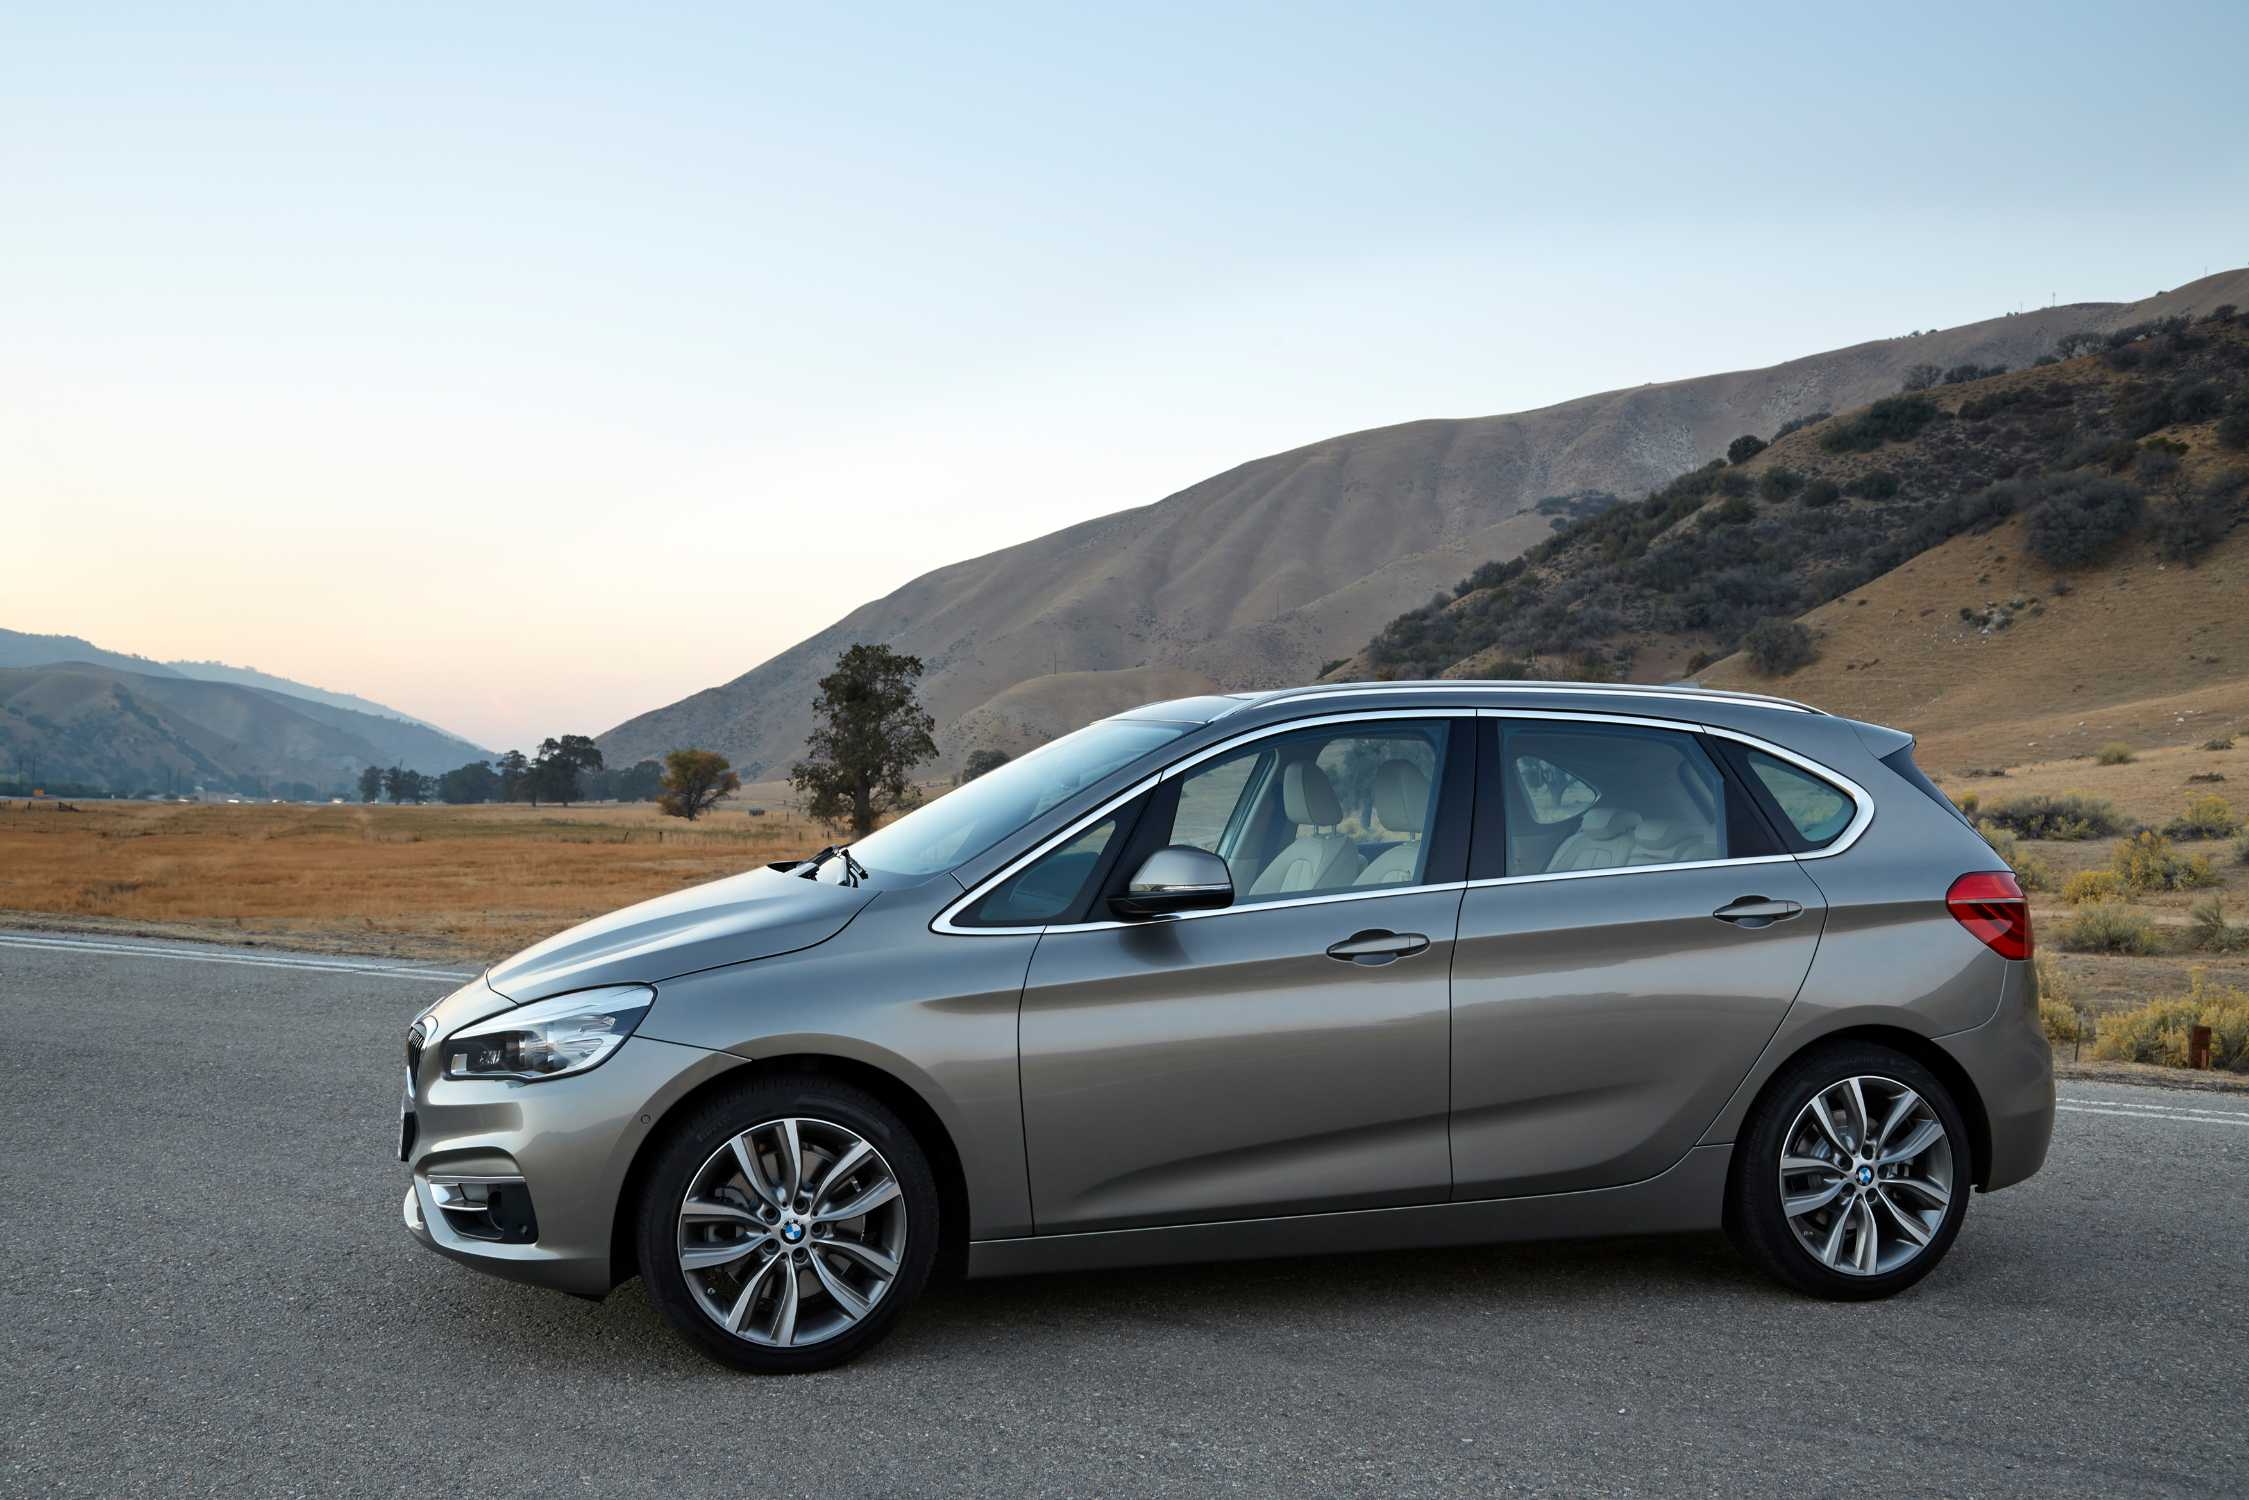 BMW 2 series Active Tourer 220d 2014 photo - 6